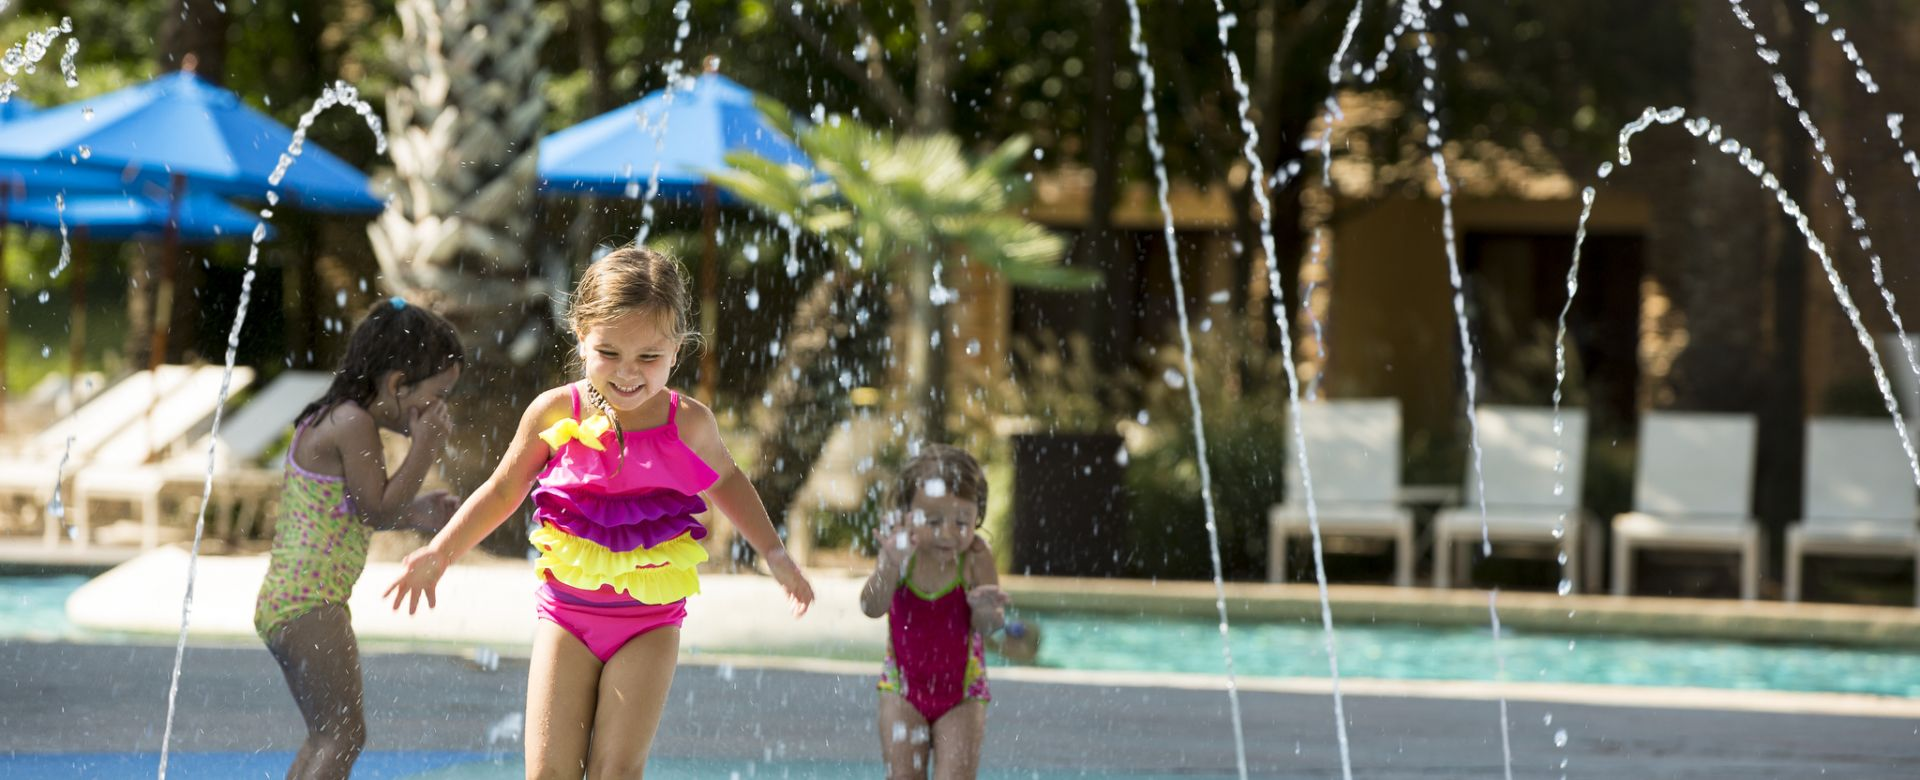 Kids smile and run through streams of water at a outdoor pool.